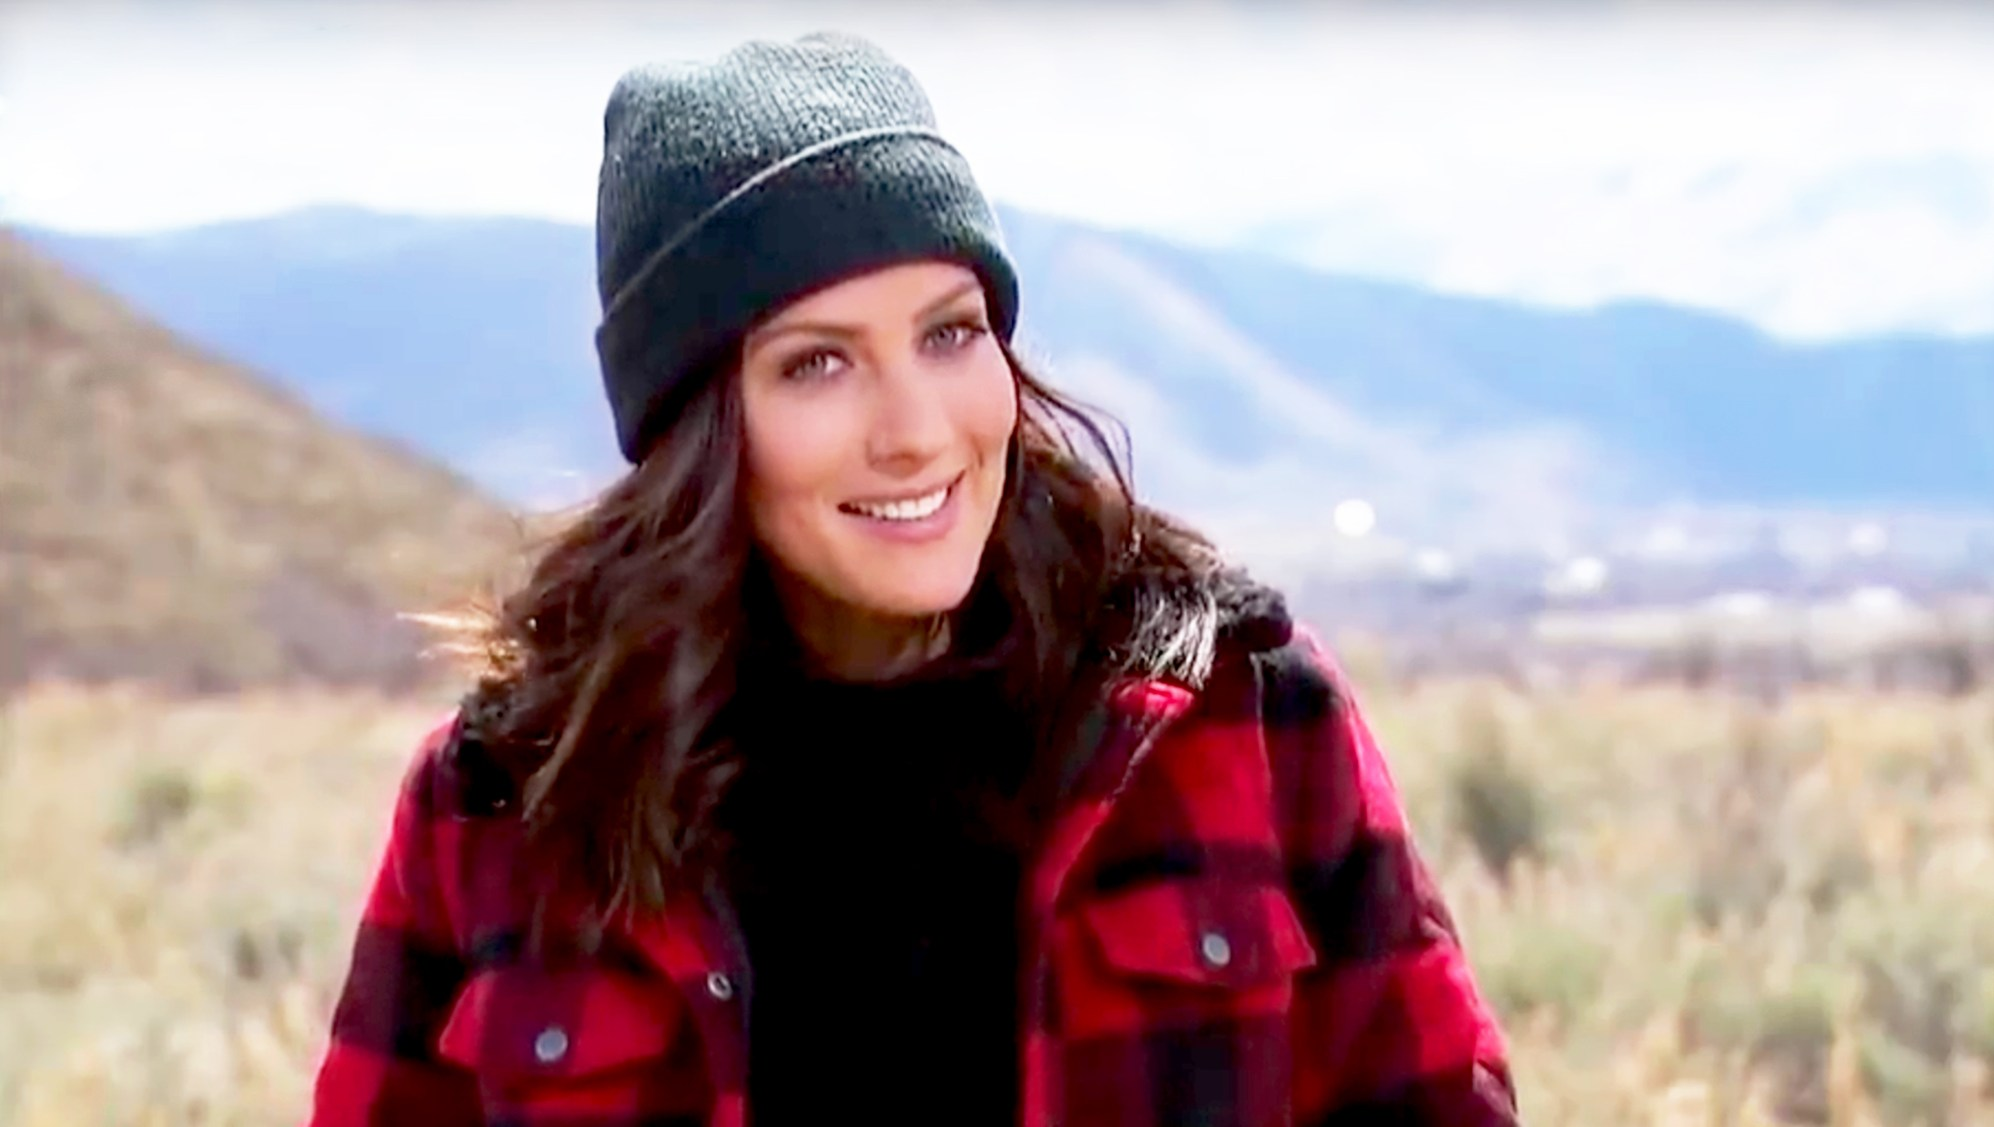 Becca Kufrin on 'The Bachelorette'